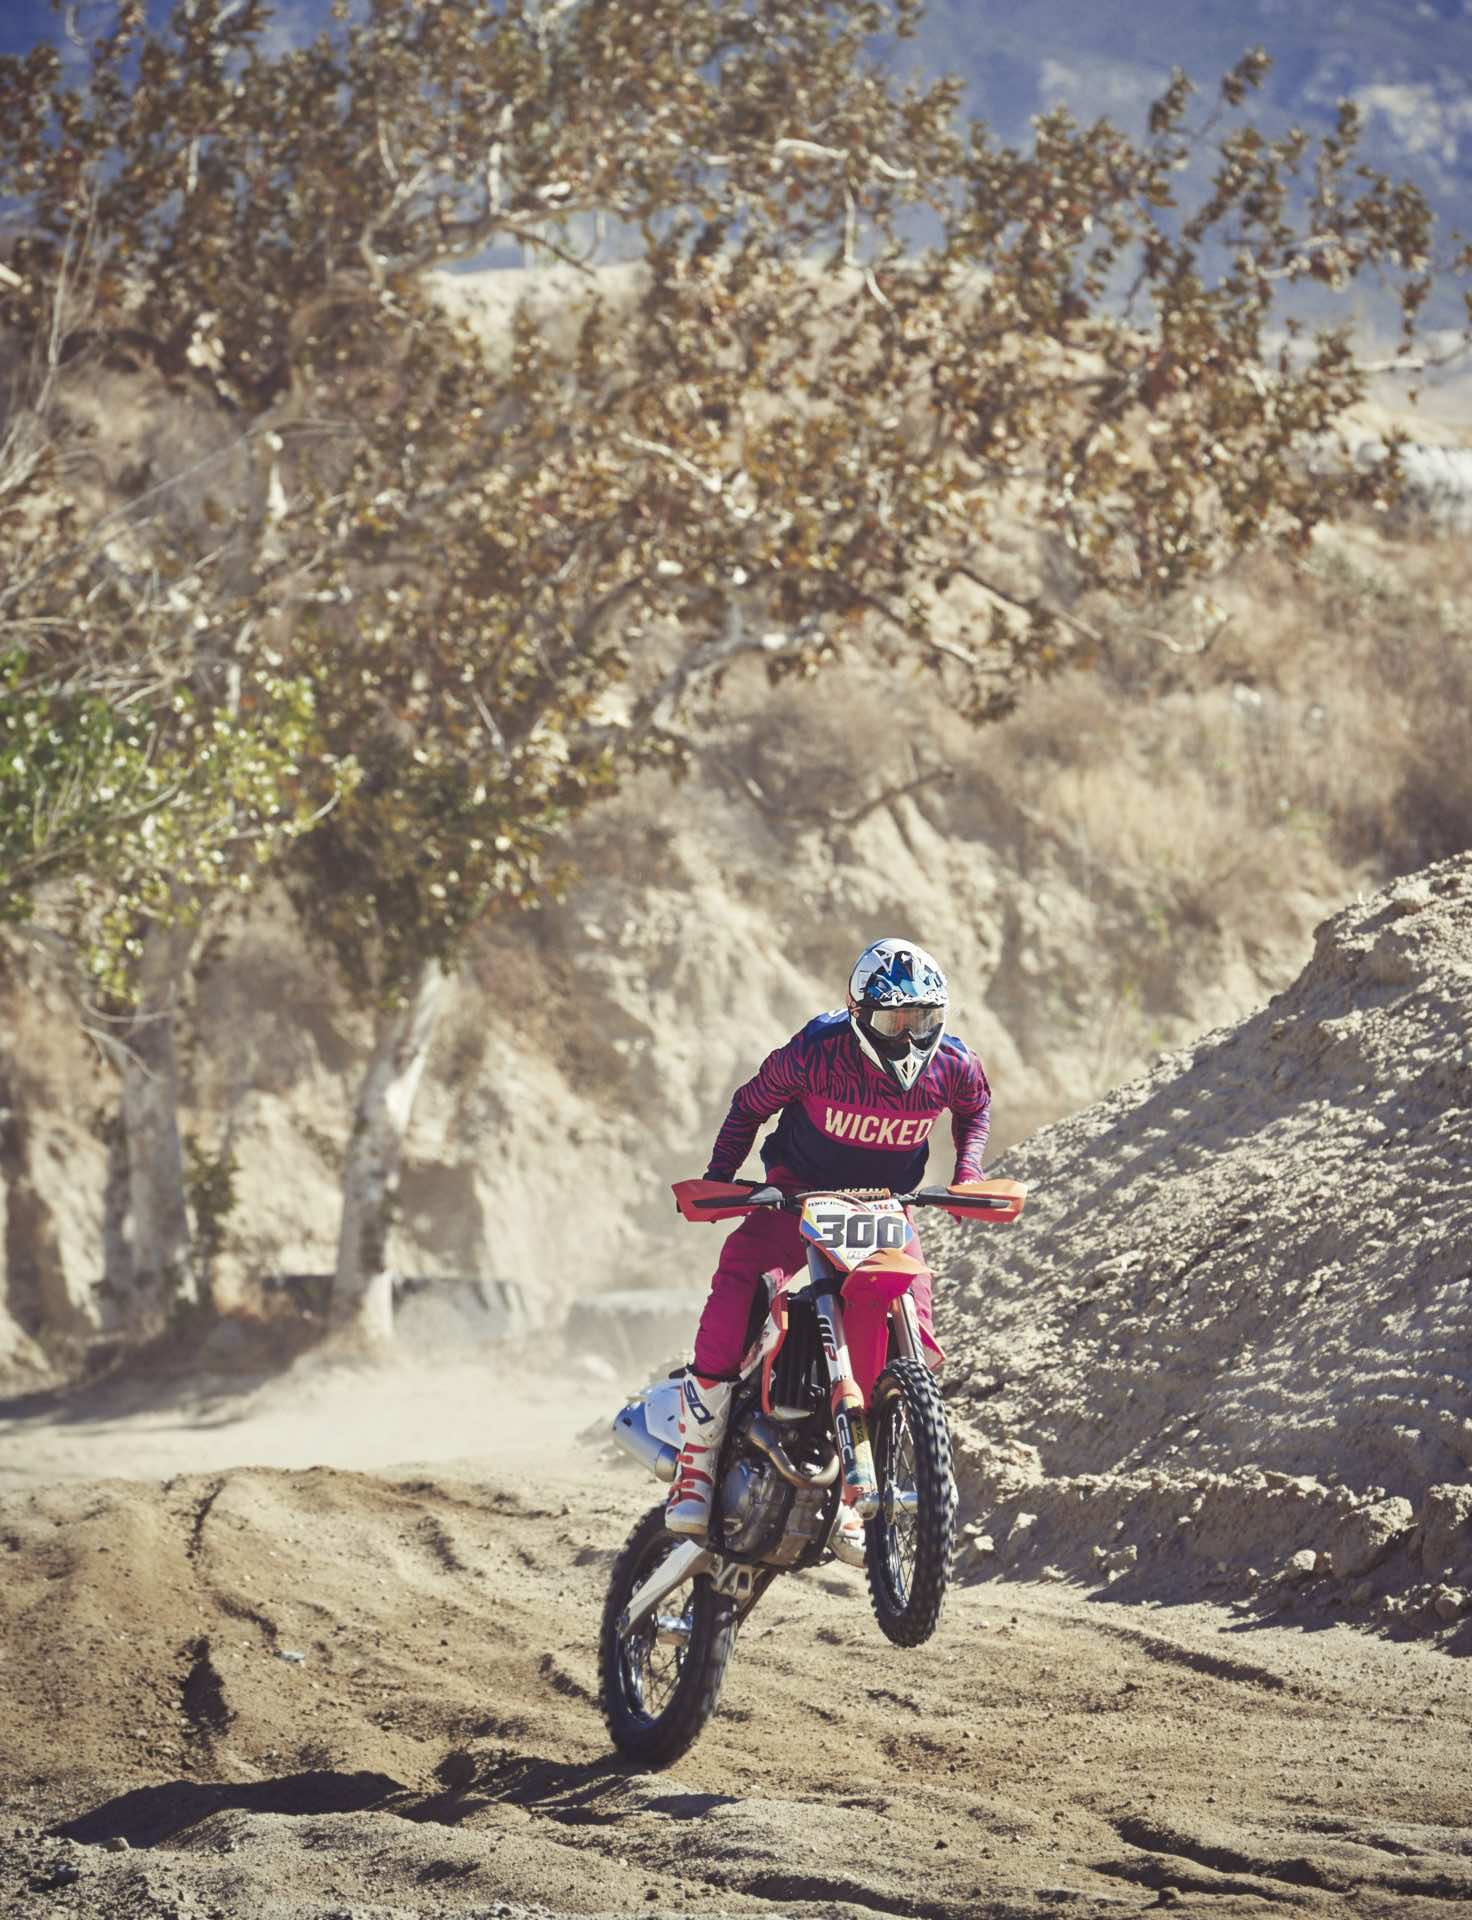 Dirt Bike riding Glen Helen